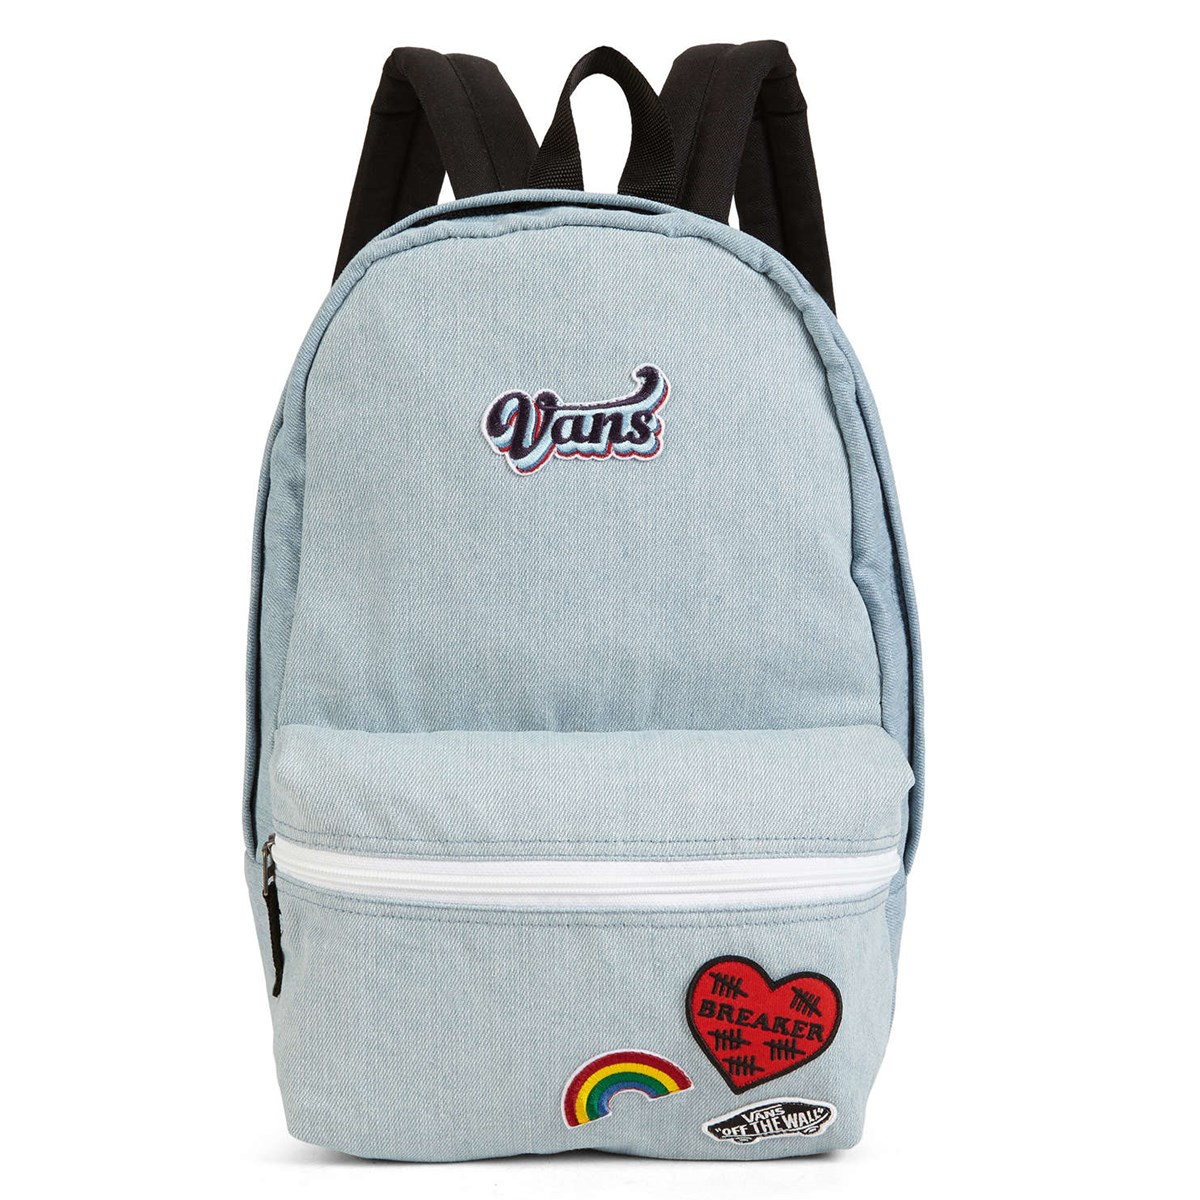 0249b4ca45ef8 Women s Calico Bluette Backpack. Previous. default view ...